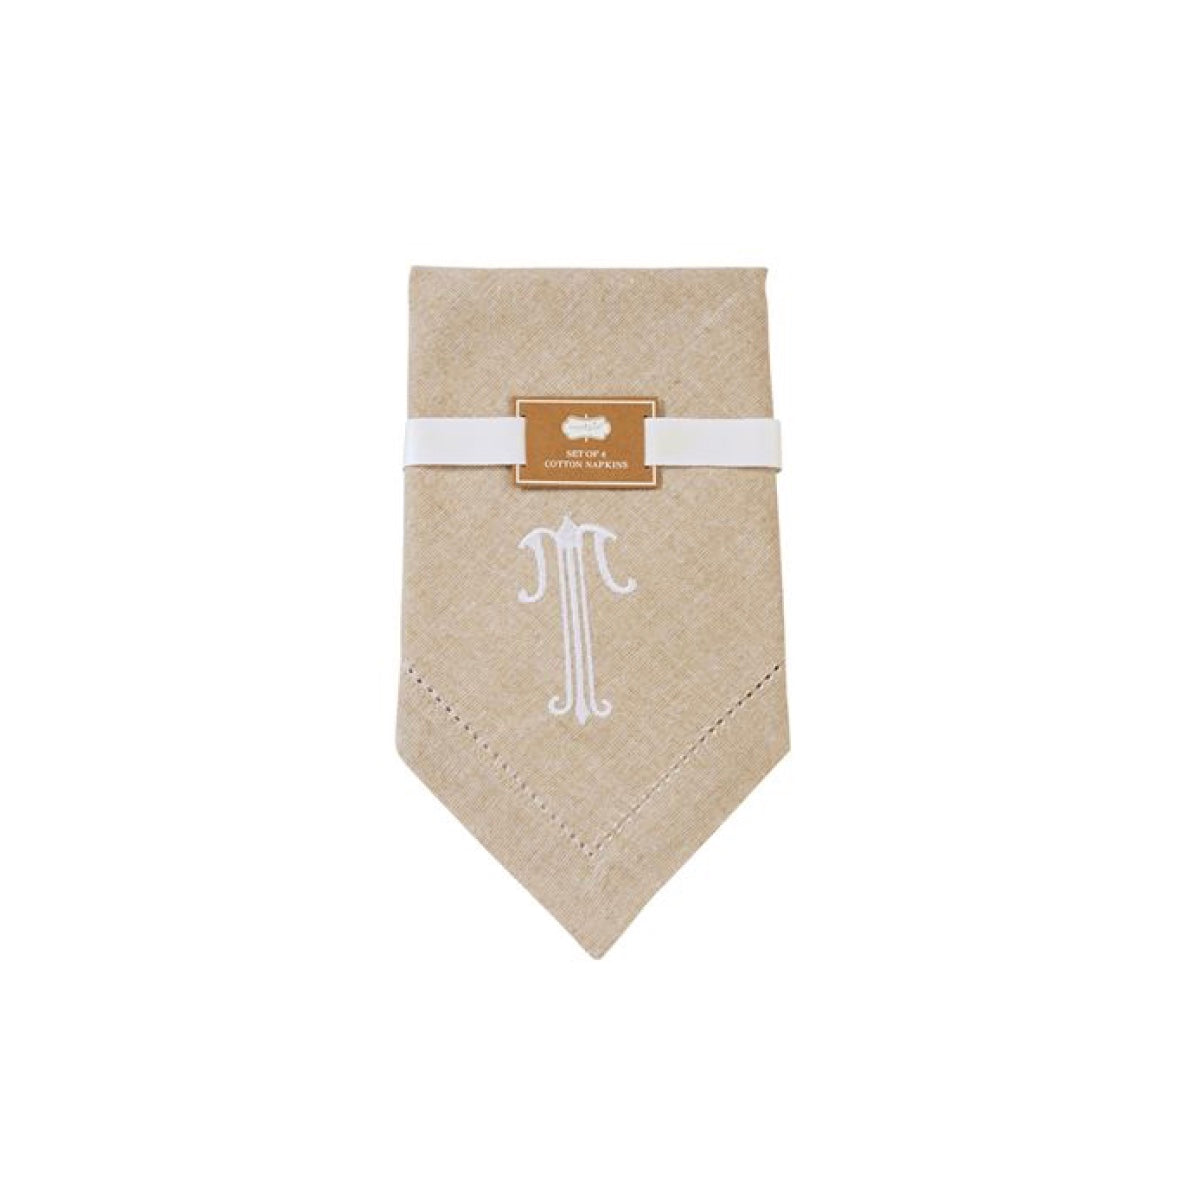 Monogrammed Napkin Set - Initial T, MP-Mud Pie, Putti Fine Furnishings